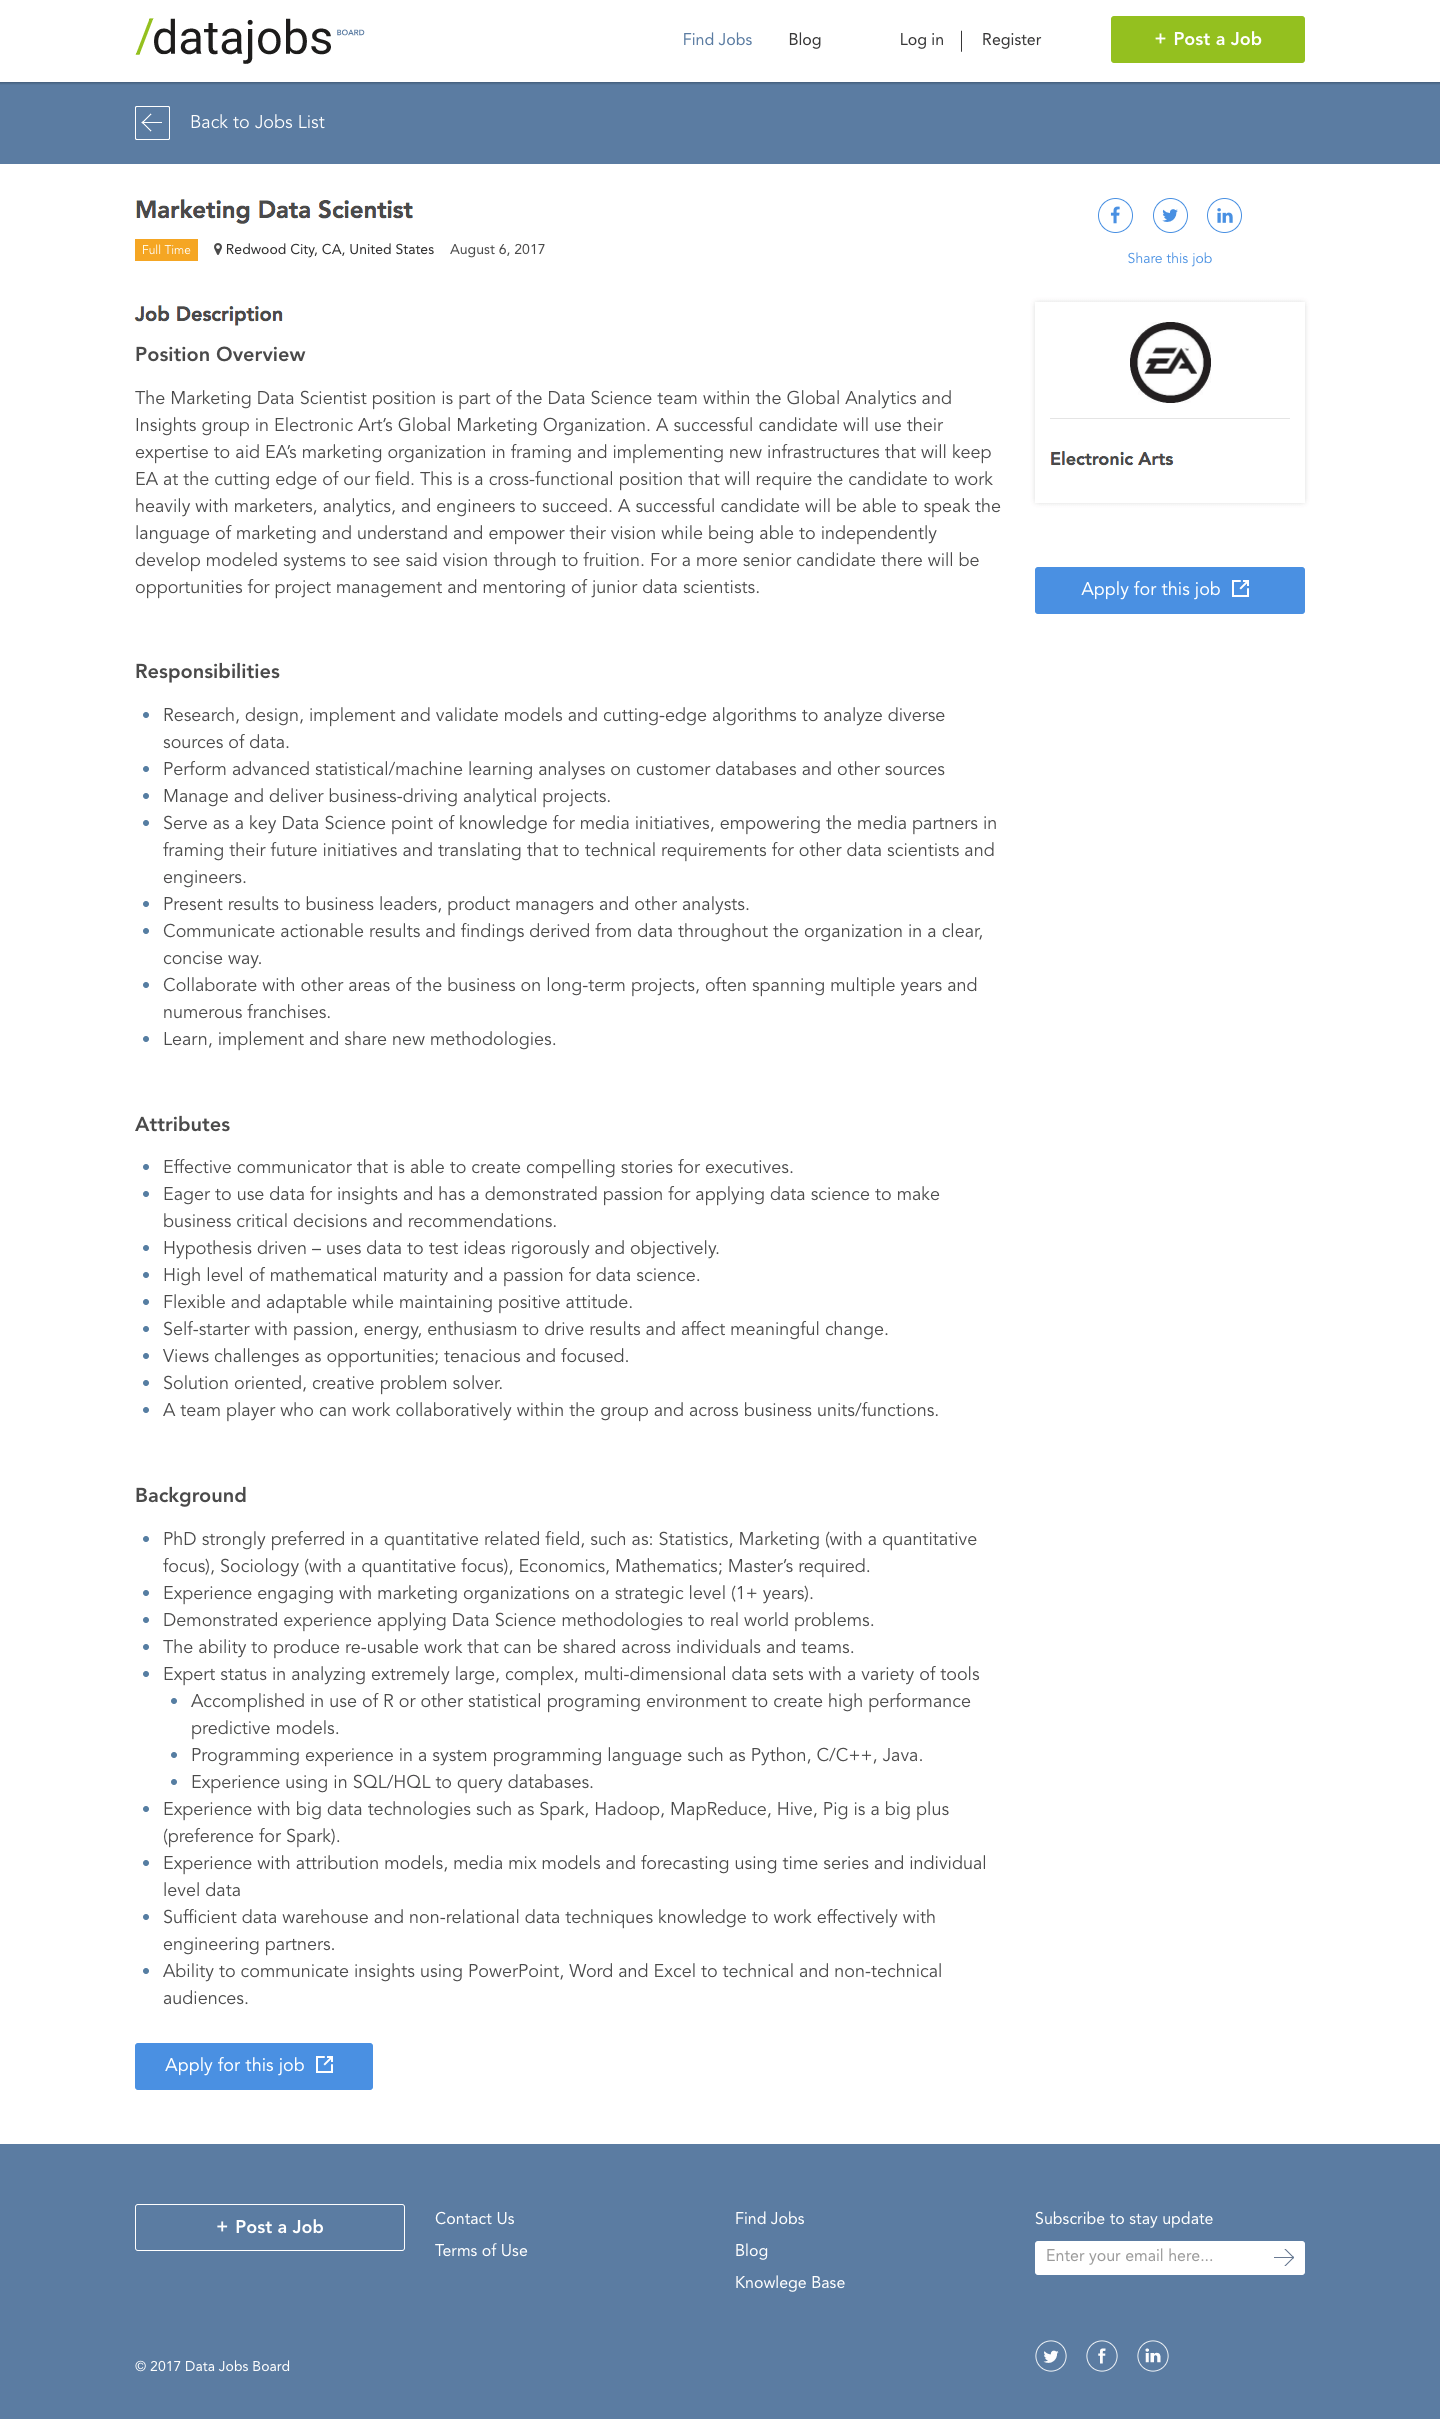 Job board «Datajobsboard»